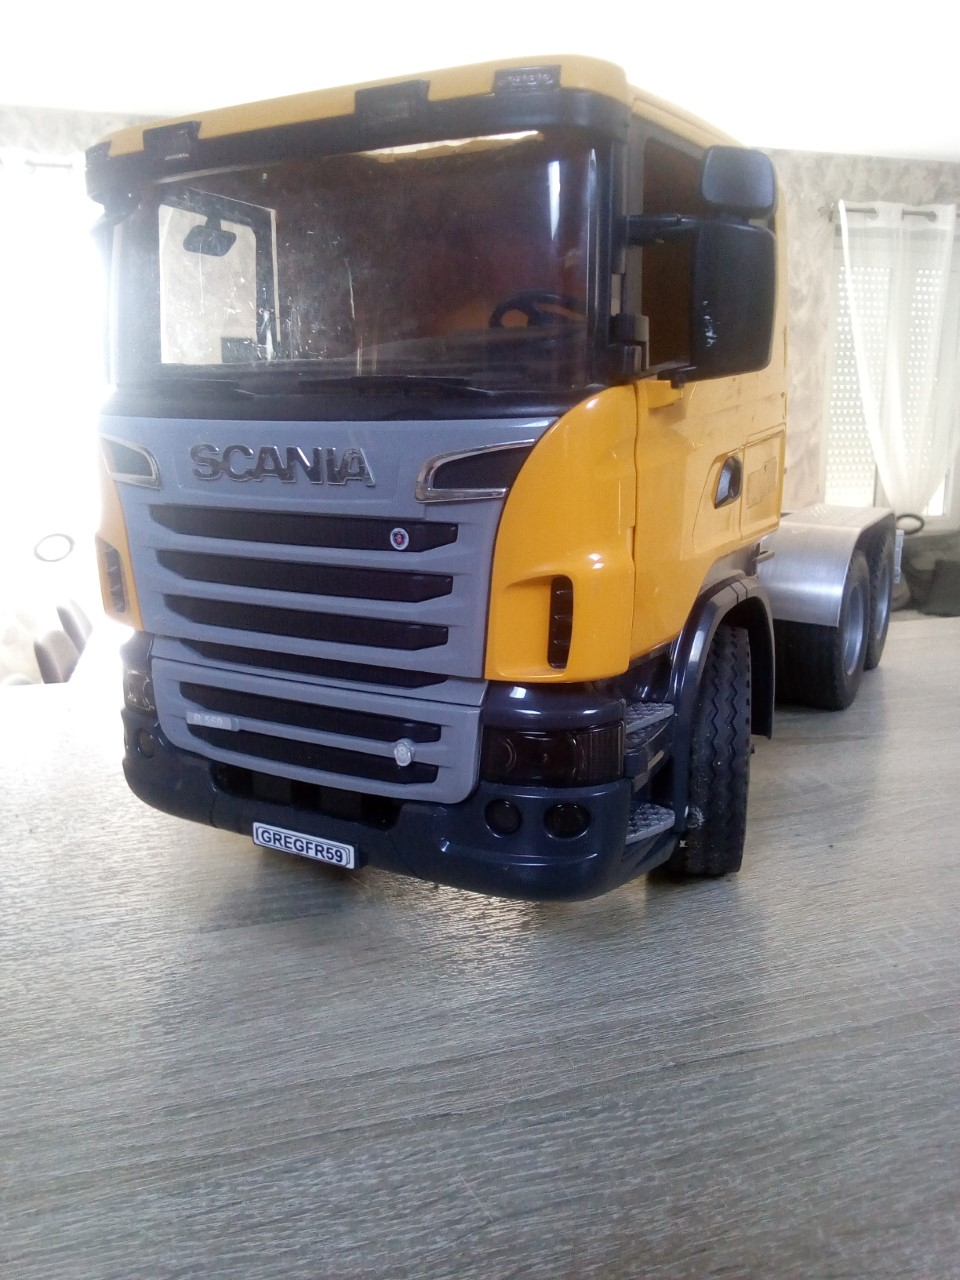 scania gregfr59 - Page 2 Thumb236